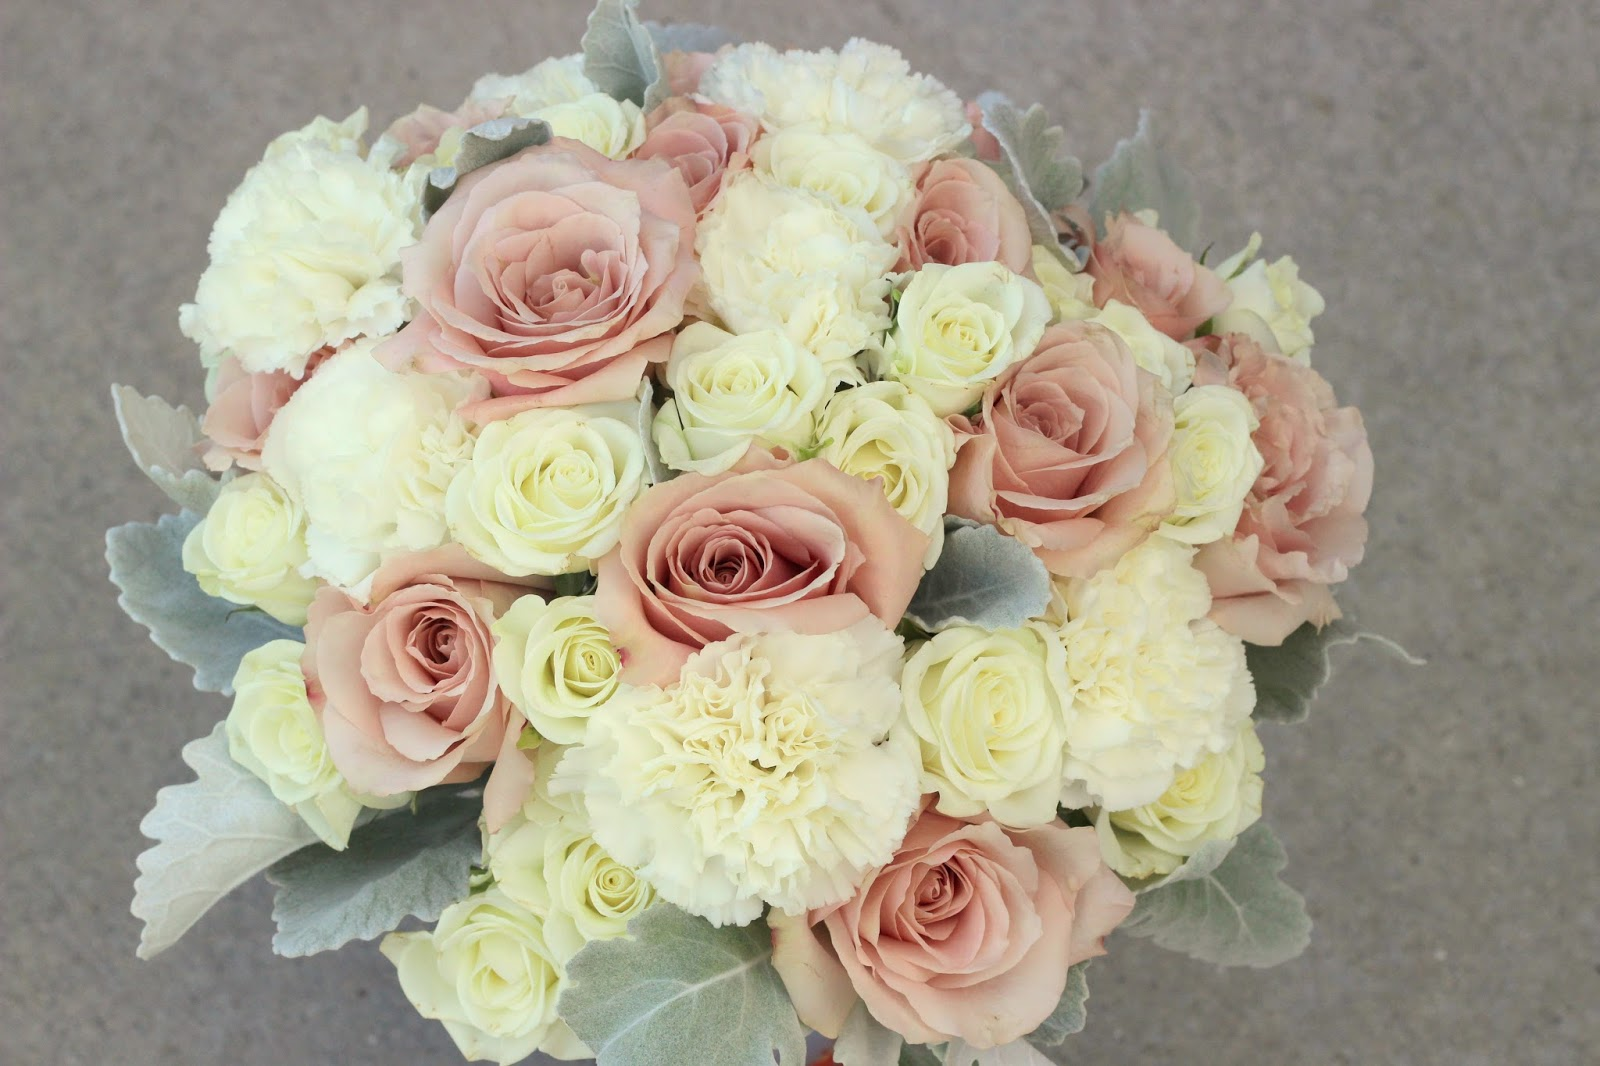 Champagne Carnations Marriage Flower Love Pictures Www